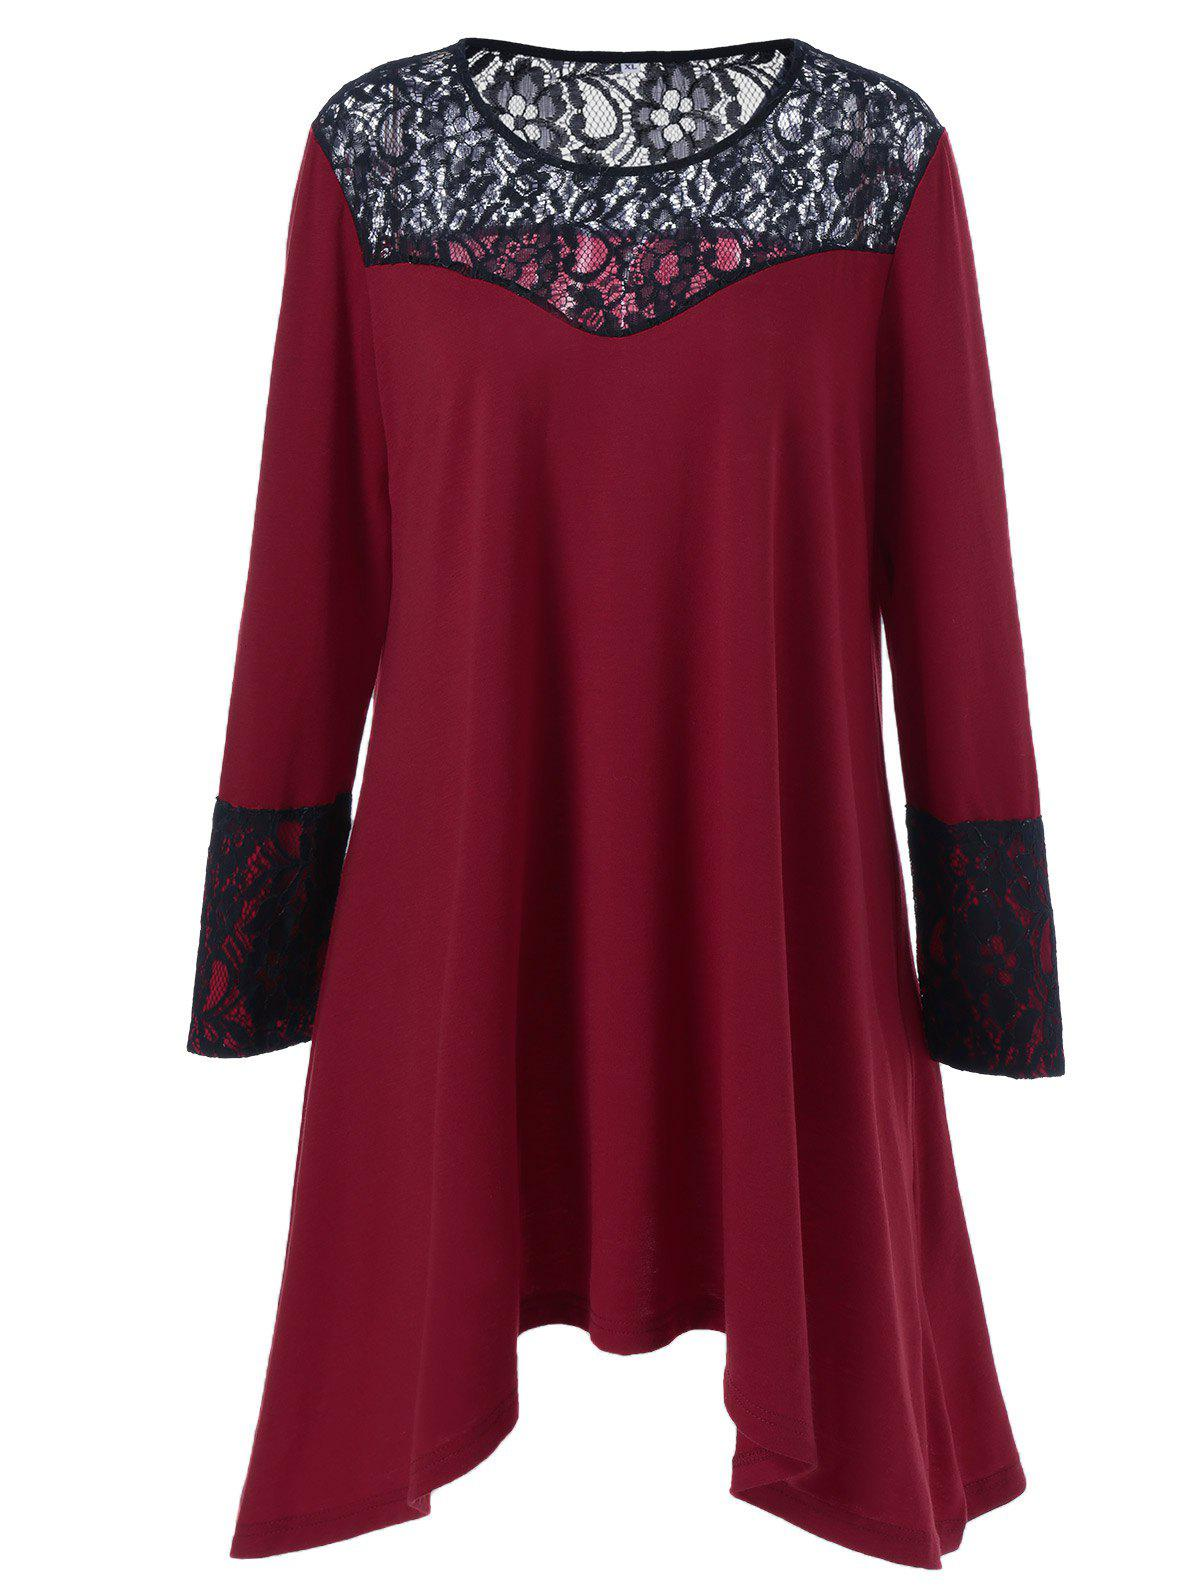 Plus Size Lace Trim Asymmetrical T Shirt DressWOMEN<br><br>Size: 2XL; Color: RED WITH BLACK; Style: Brief; Material: Polyester,Spandex; Silhouette: Asymmetrical; Dresses Length: Mini; Neckline: Round Collar; Sleeve Length: Long Sleeves; Pattern Type: Patchwork; With Belt: No; Season: Fall,Spring; Weight: 0.350kg; Package Contents: 1 x Dress;